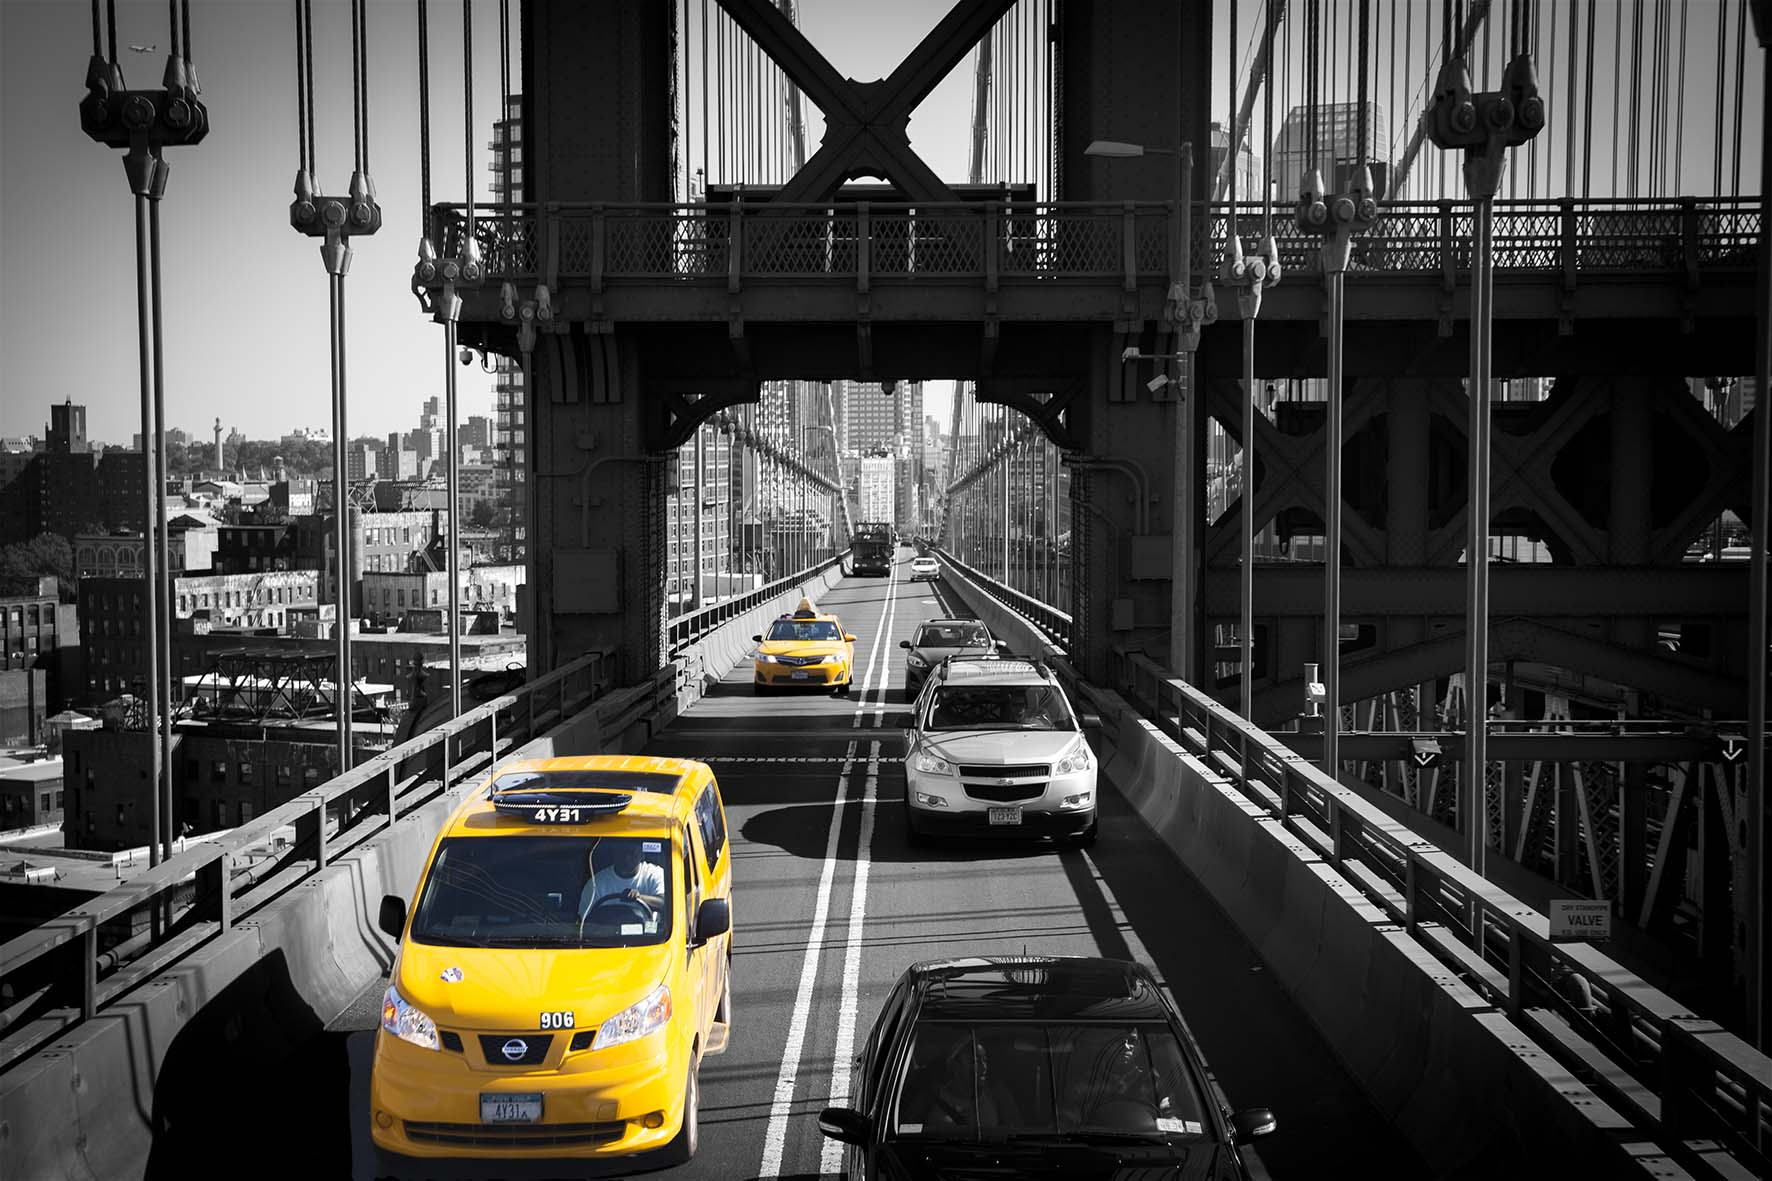 Manhattan Bridge Taxi, New York | Special edition Art Print on Aluminium